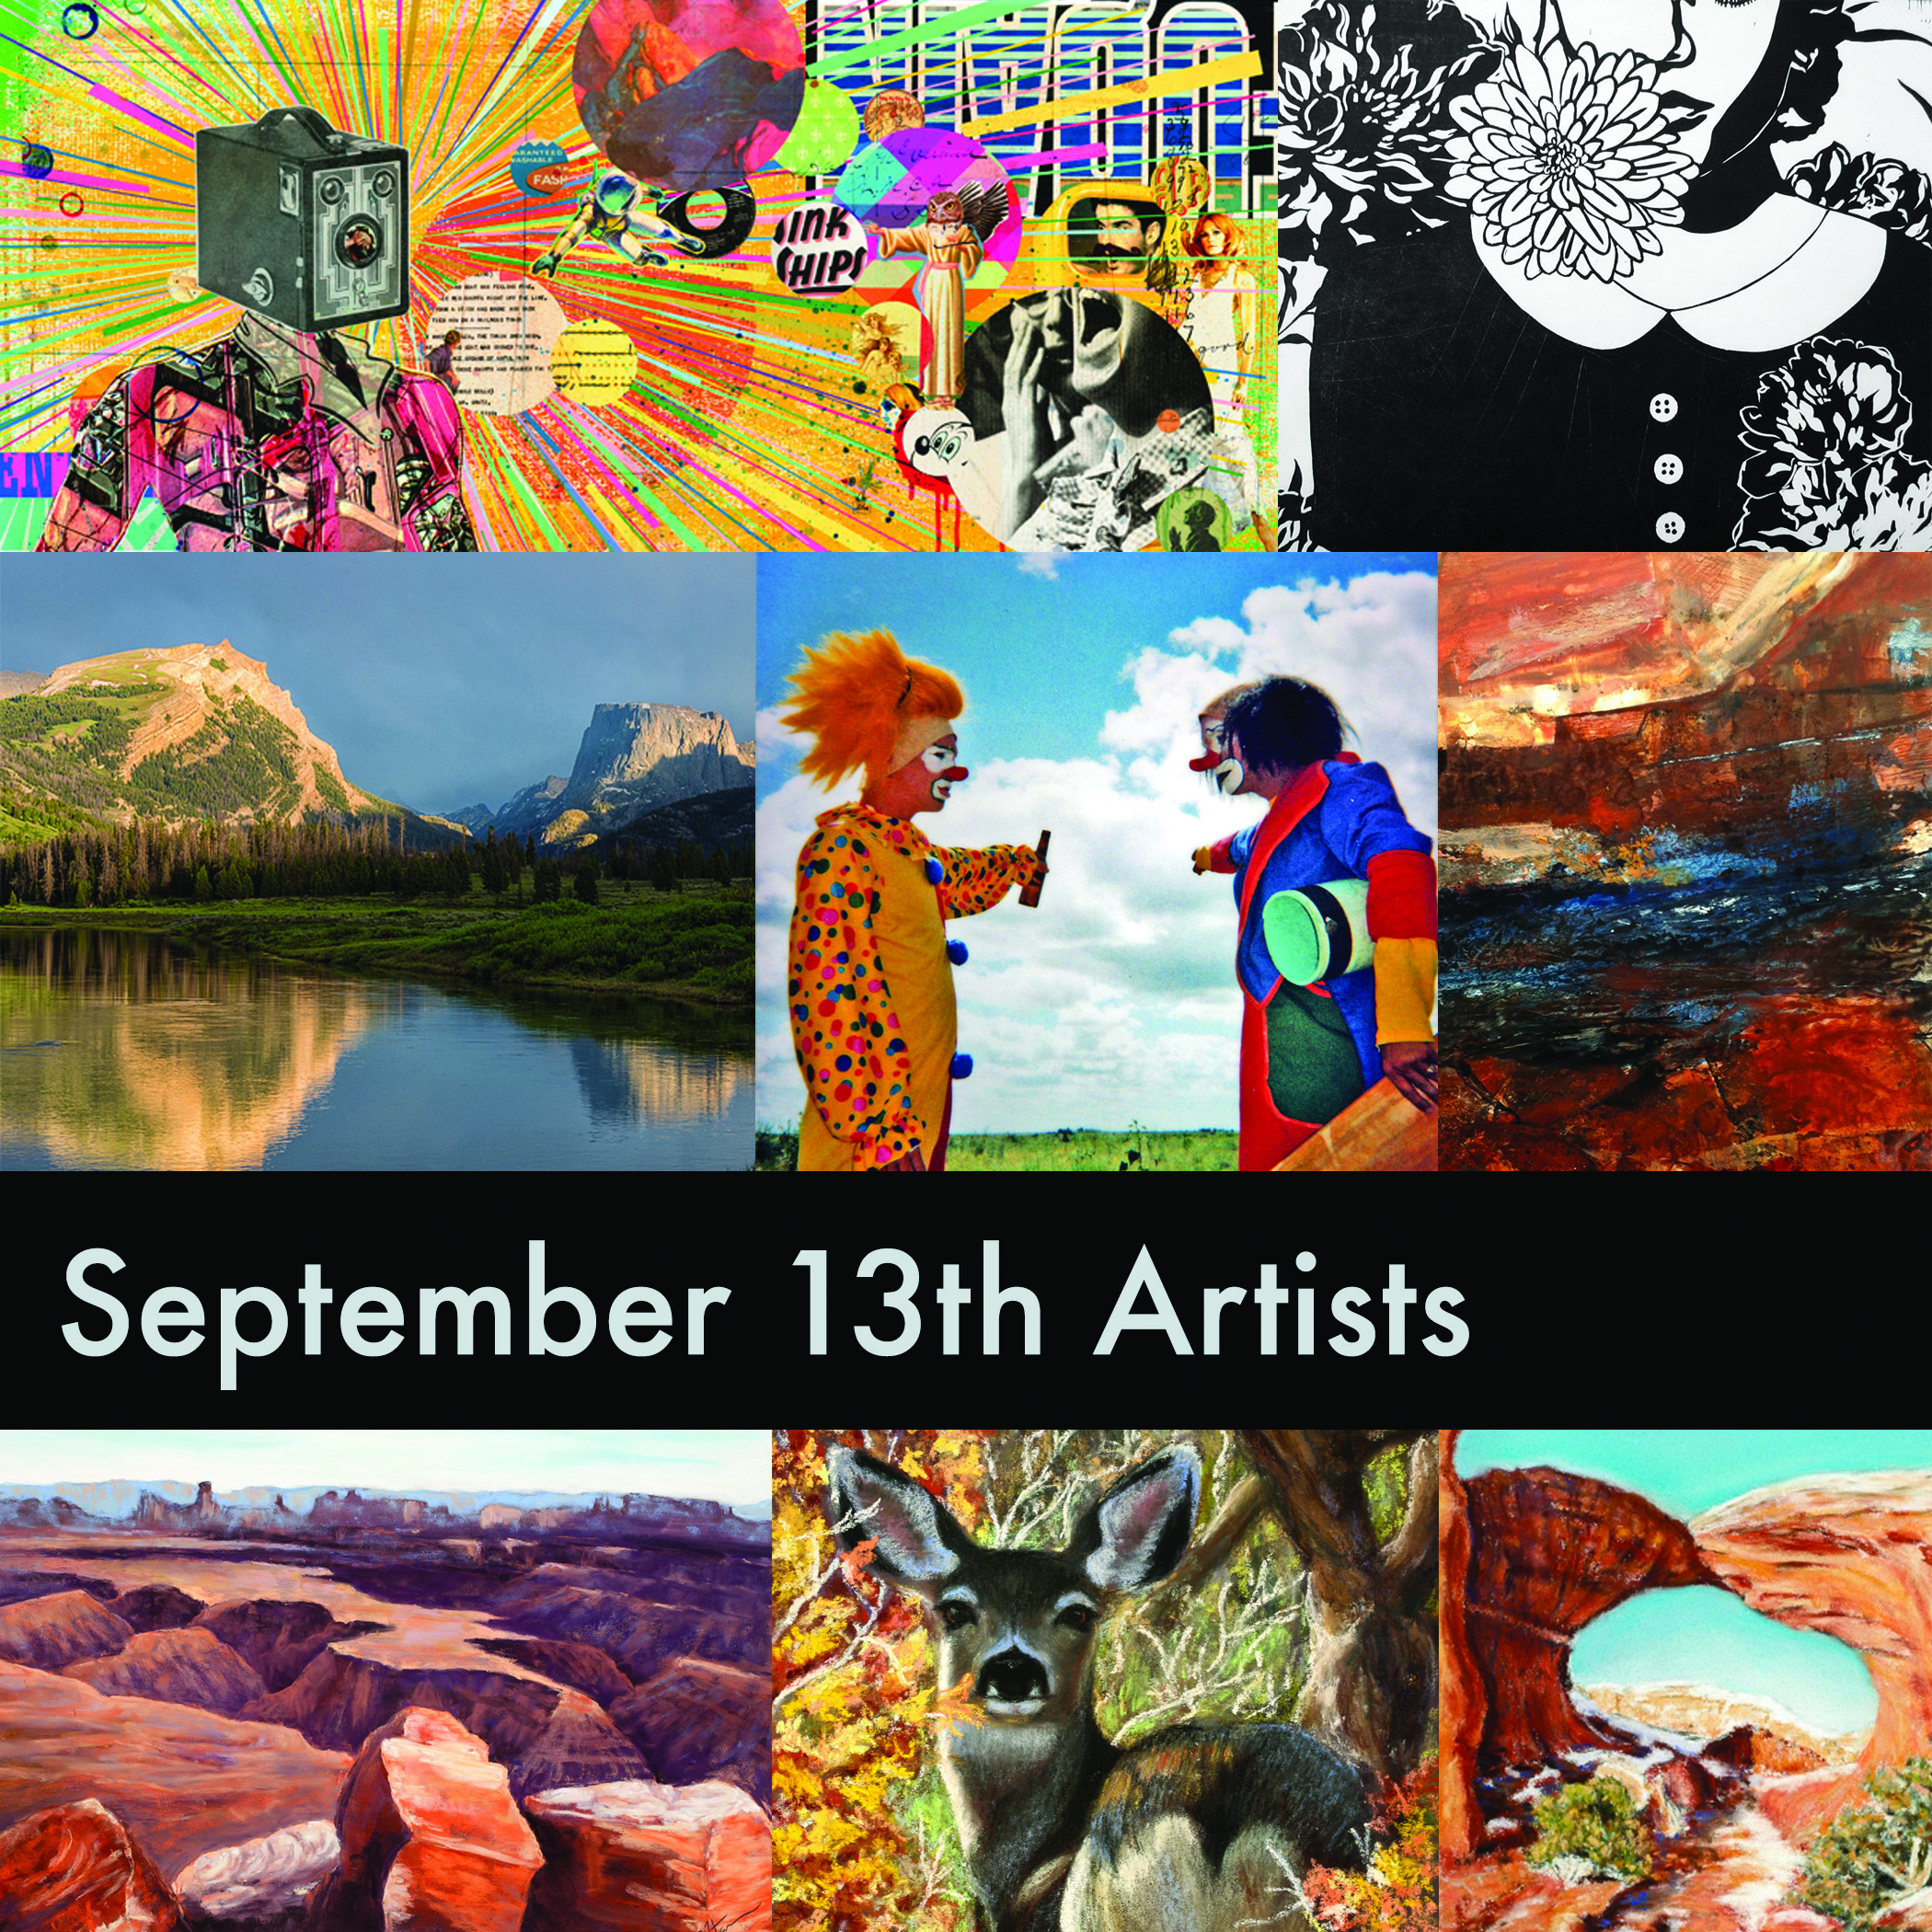 September kicked off the Fall season of Artwalk! Great art and great fun!